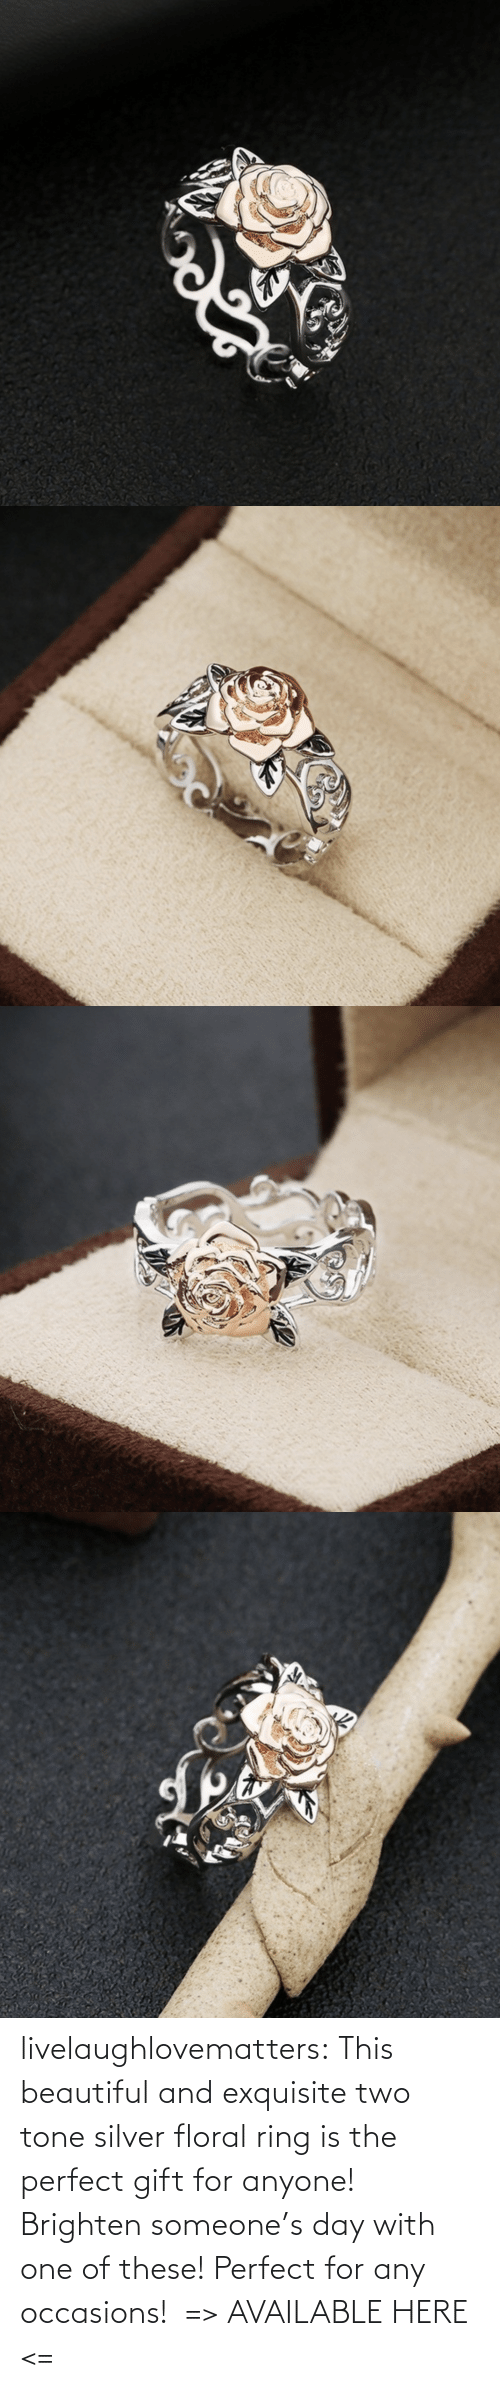 ring: livelaughlovematters: This beautiful and exquisite two tone silver floral ring is the perfect gift for anyone! Brighten someone's day with one of these! Perfect for any occasions!  => AVAILABLE HERE <=